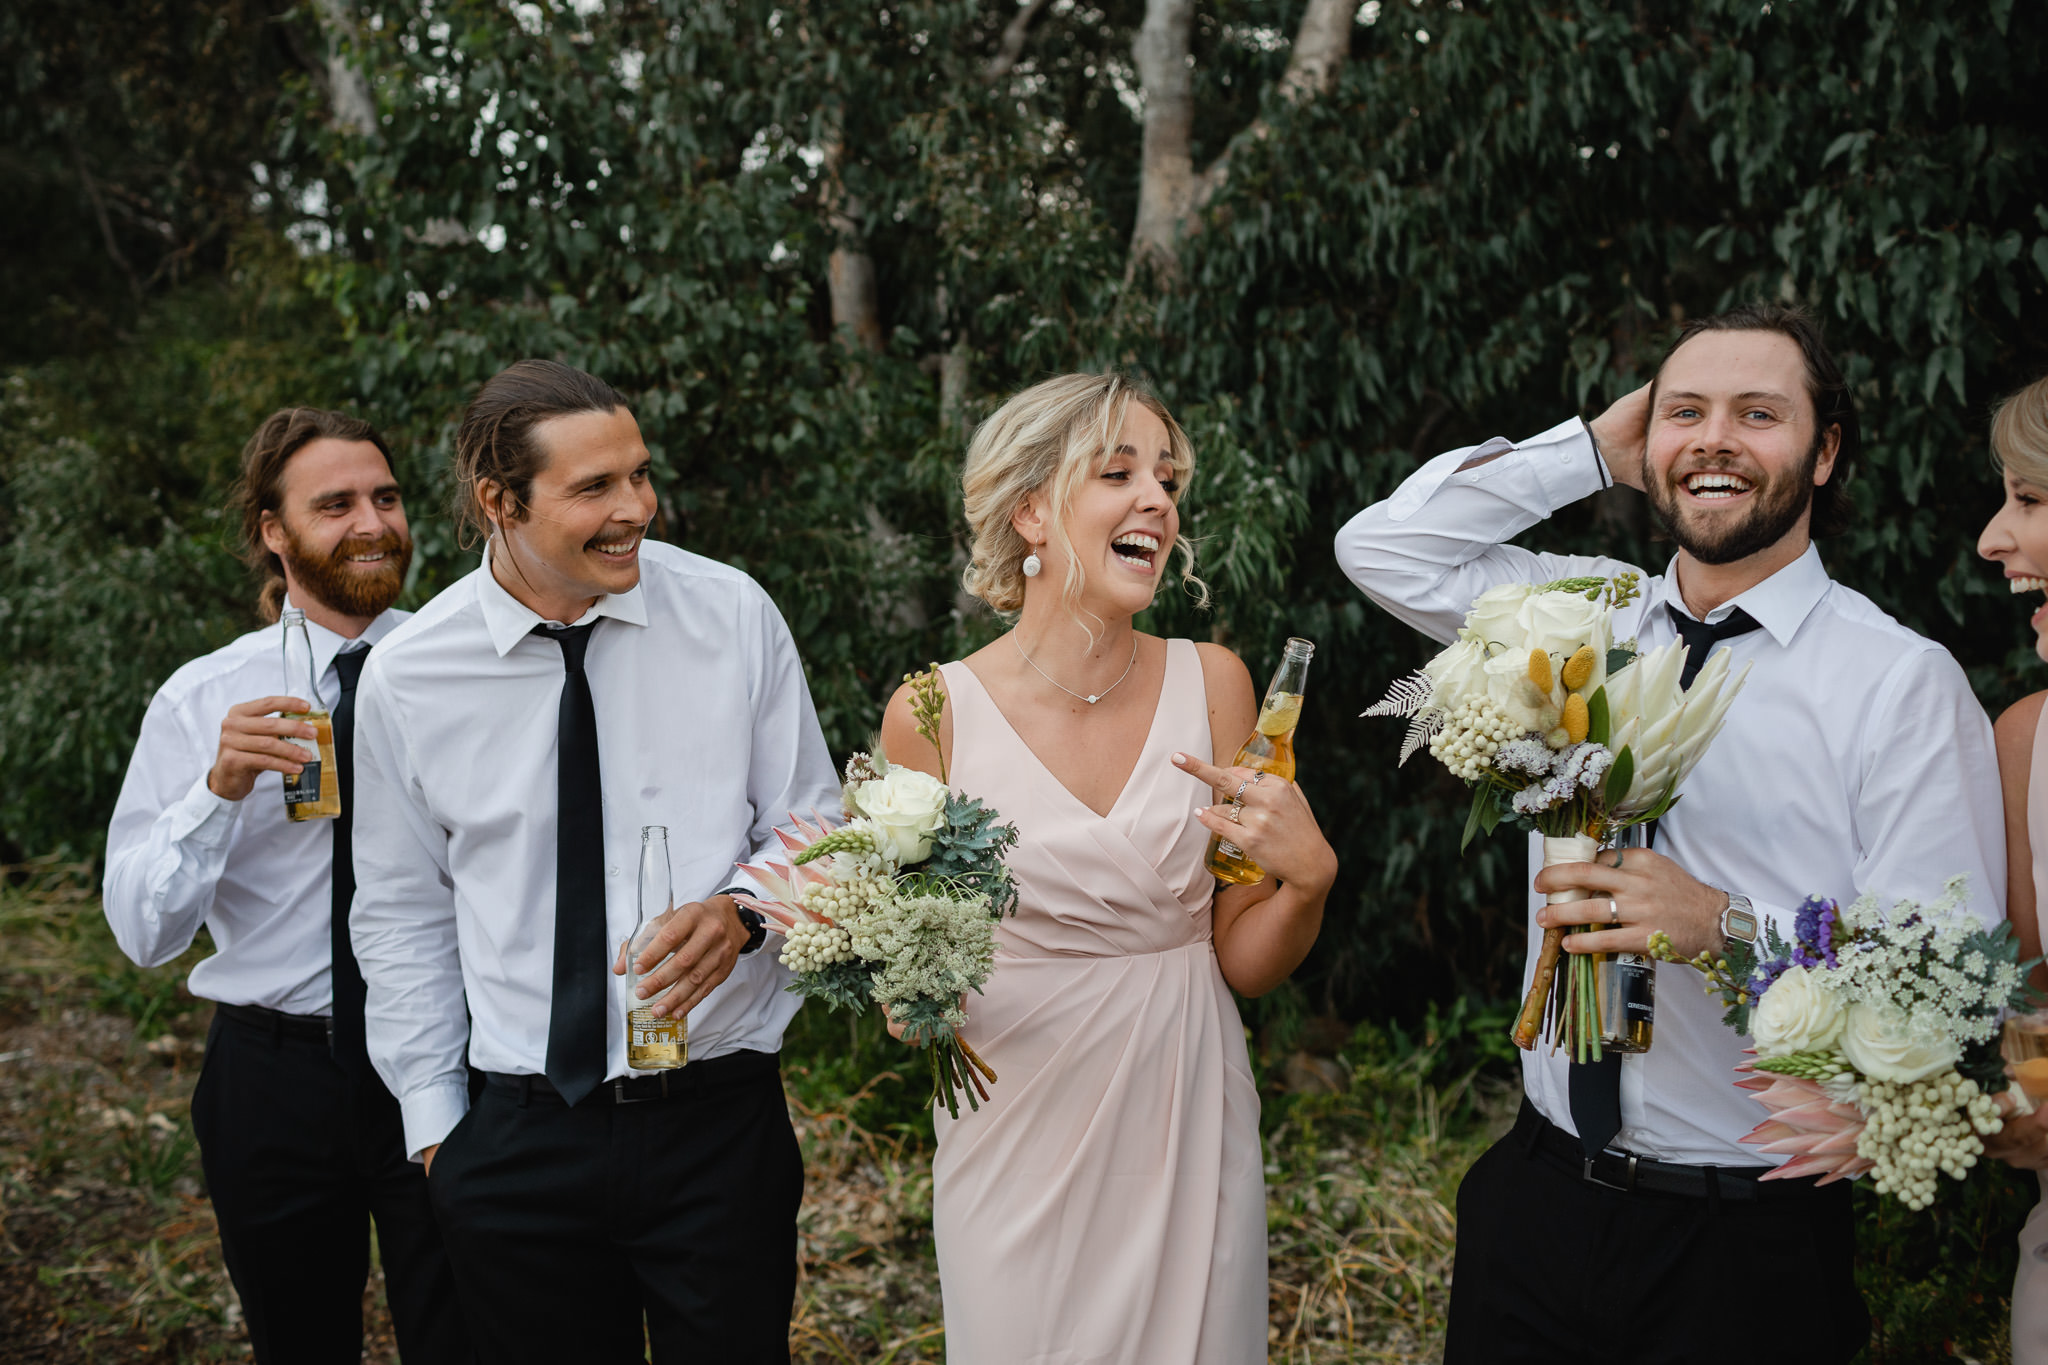 bridesmaids and groomsmen drinking beer and laughing during bridal party photo session